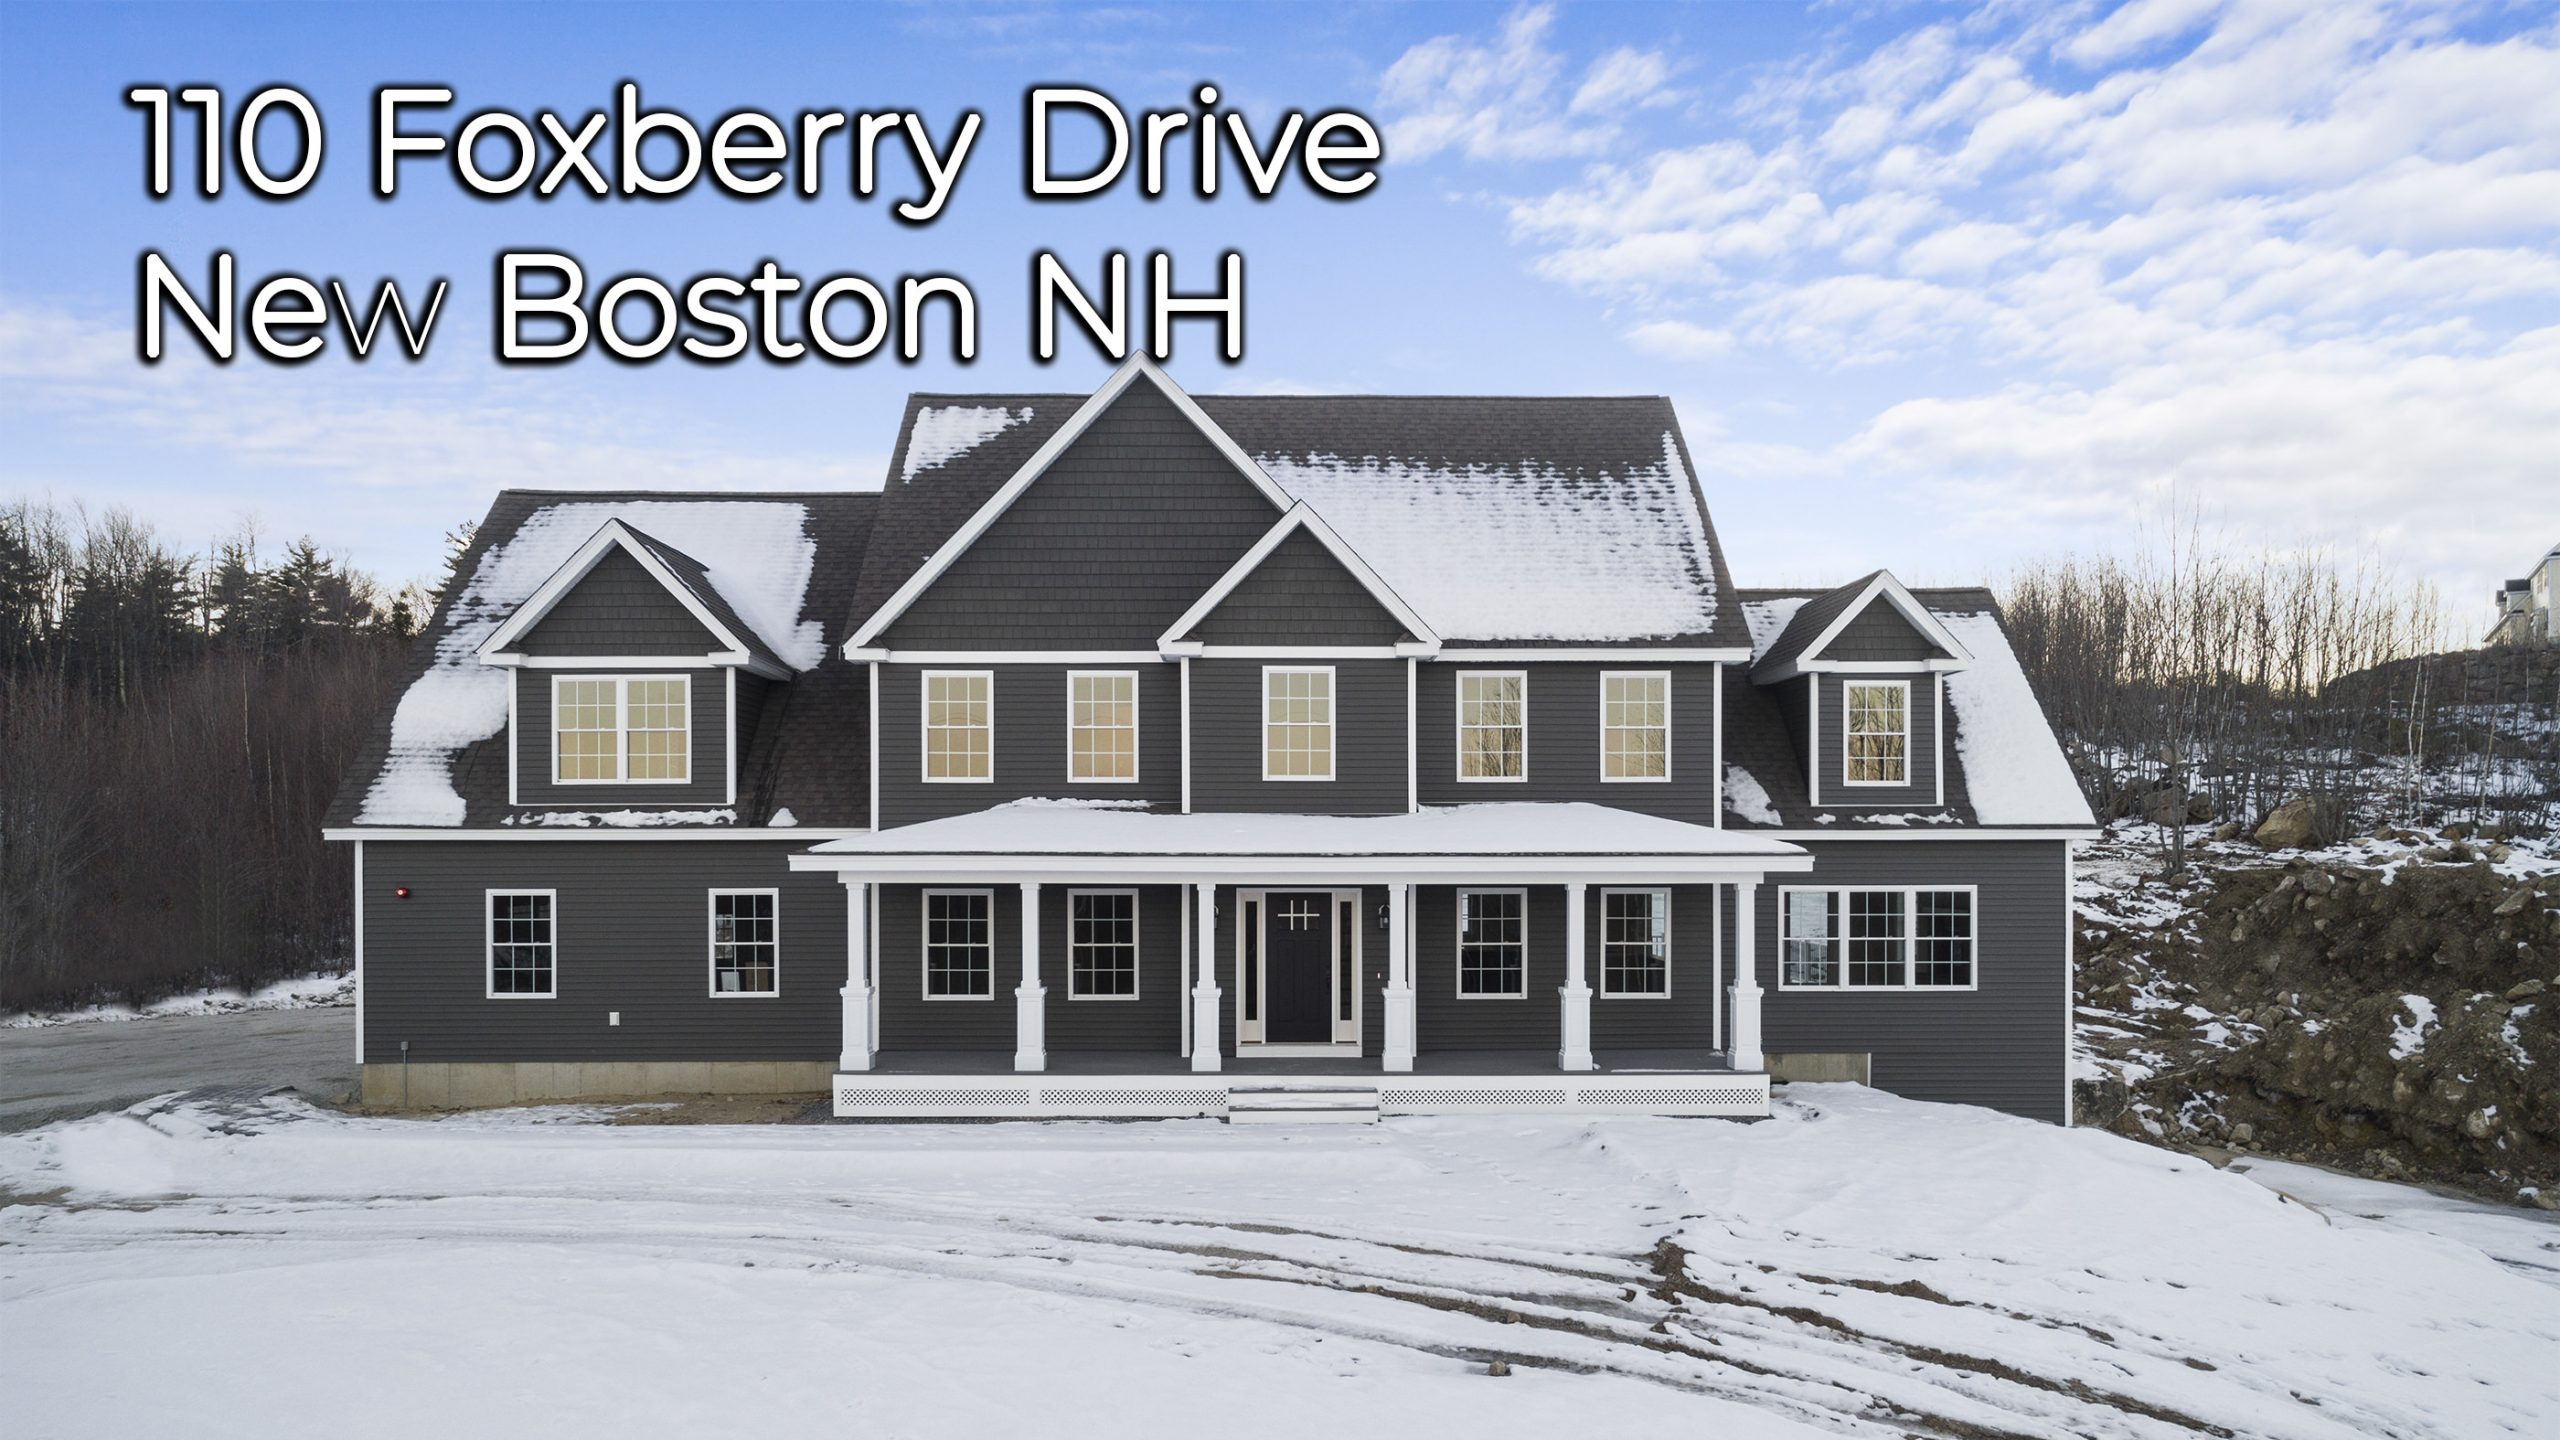 110 Foxberry Drive New Boston NH 03070